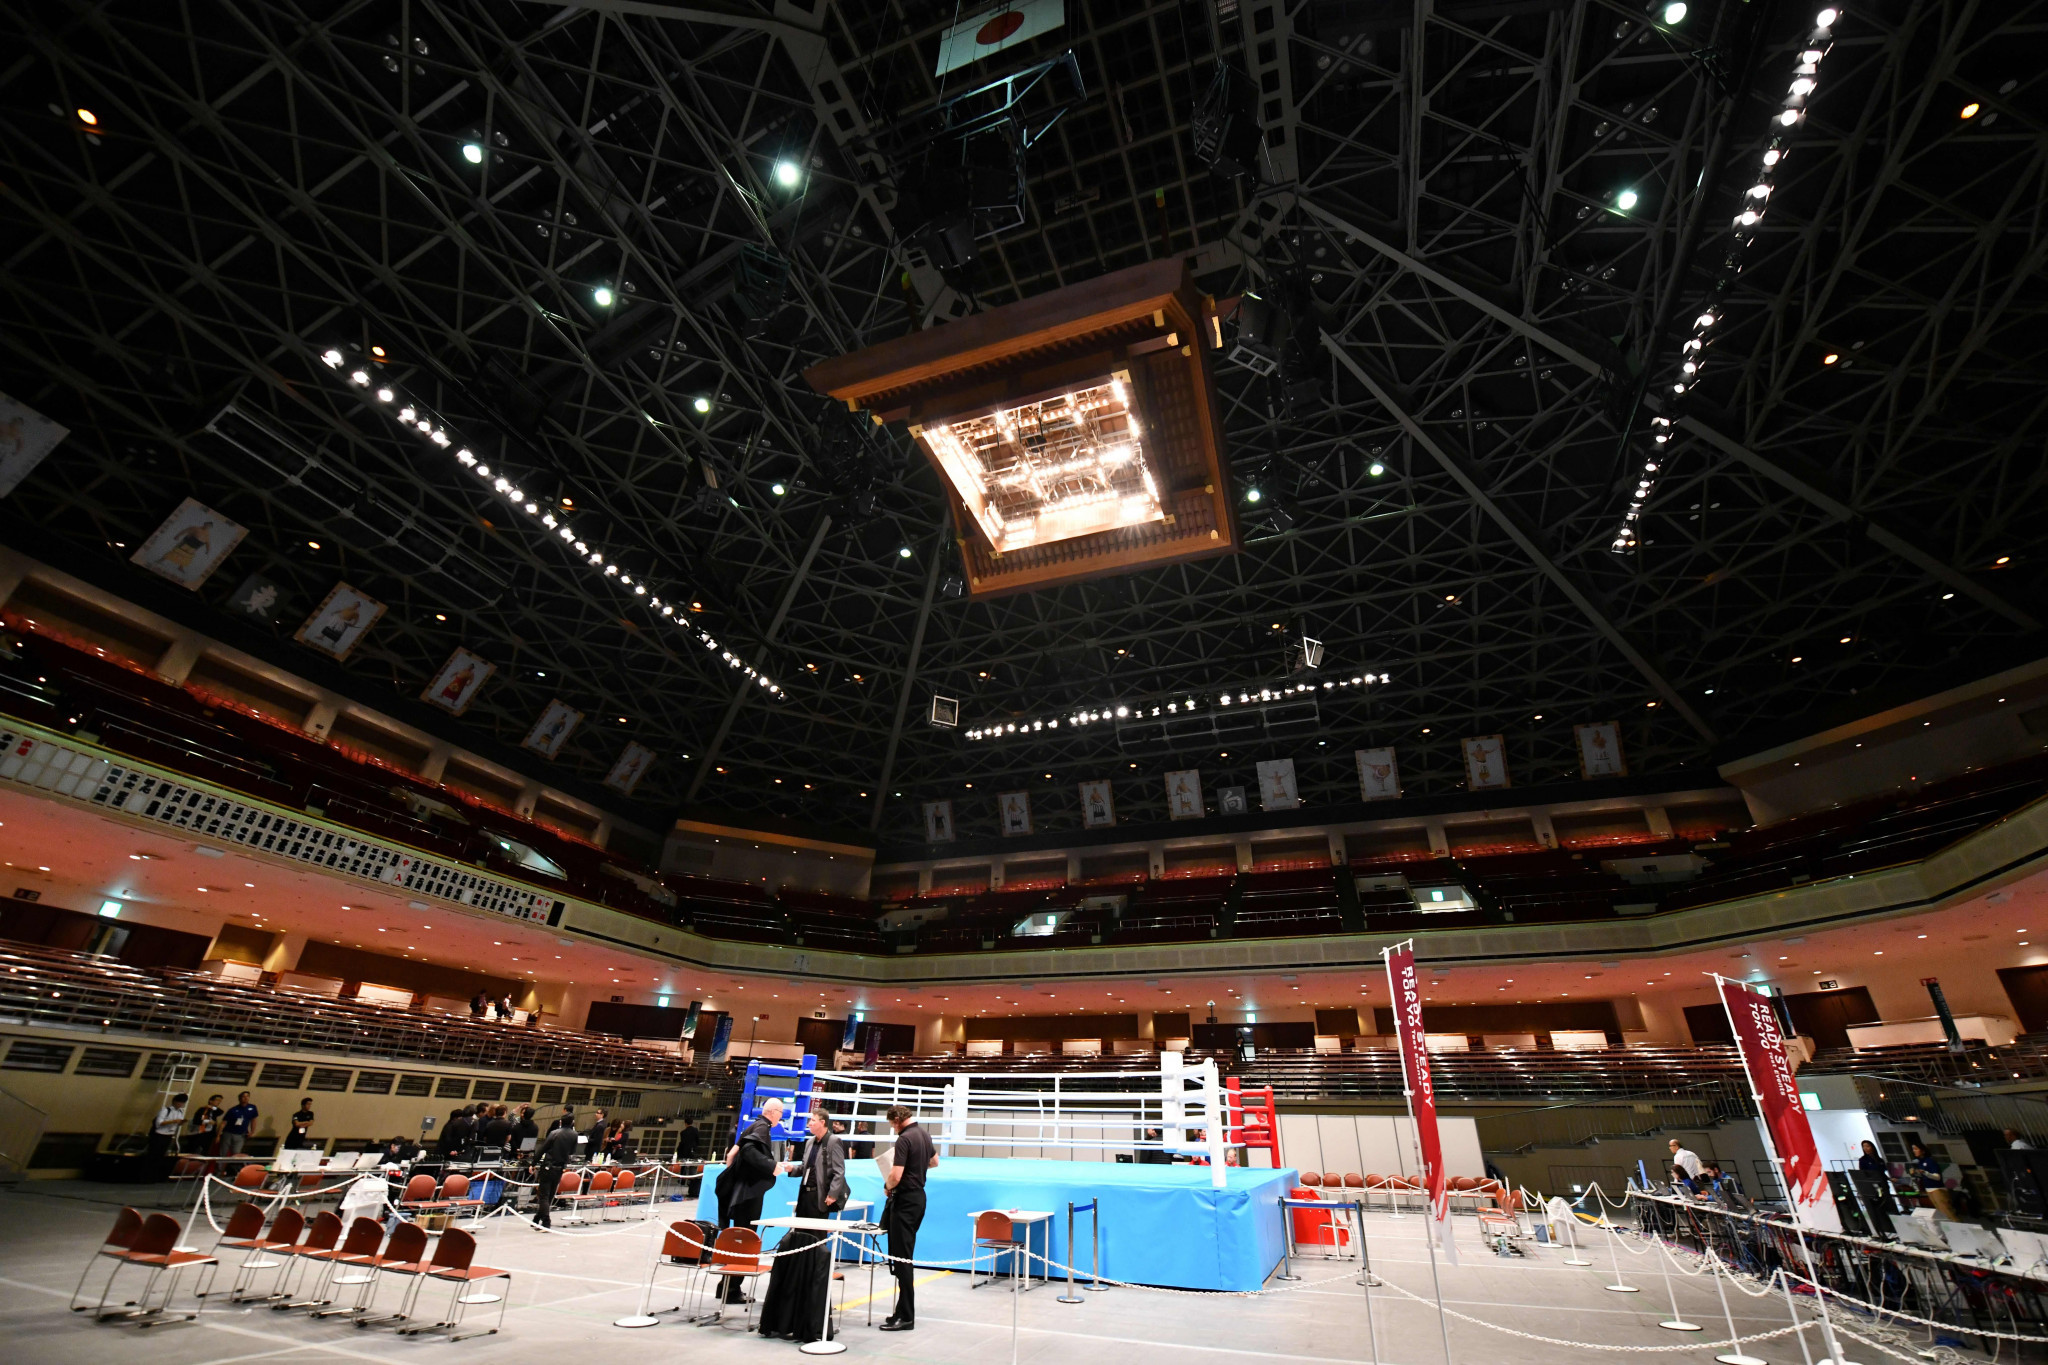 The Ryōgoku Kokugikan sumo venue will be used for boxing at Tokyo 2020 ©Getty Images